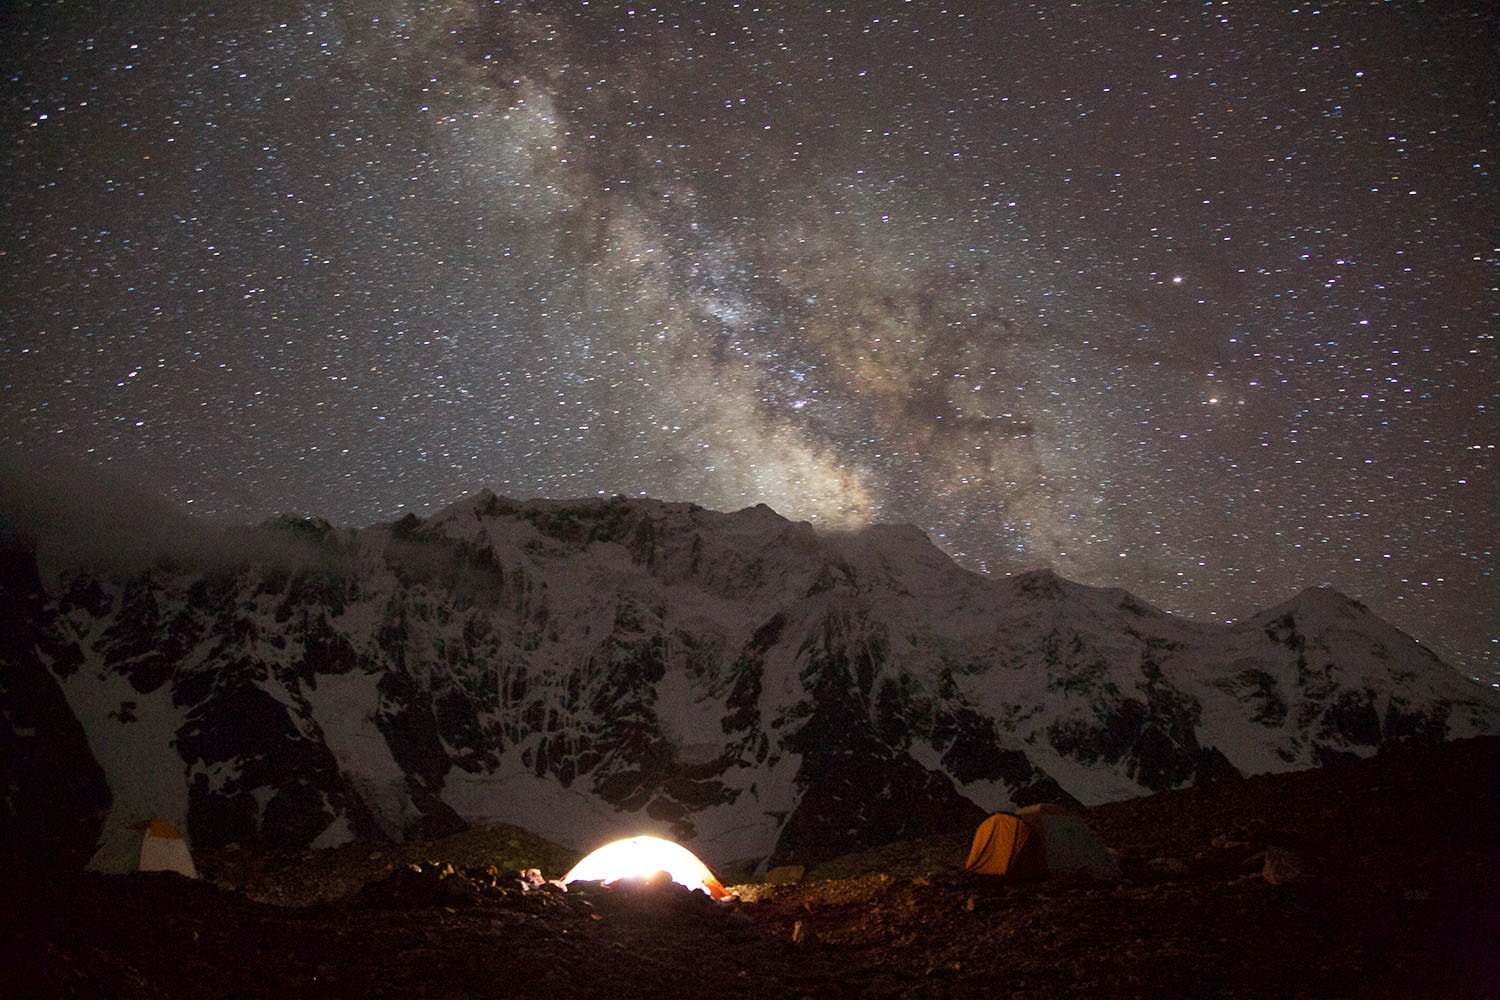 Goro II is notorious for being the coldest site. I took this photograph of the Milky Way extending from Biarchedi mountain with my tent lit up.